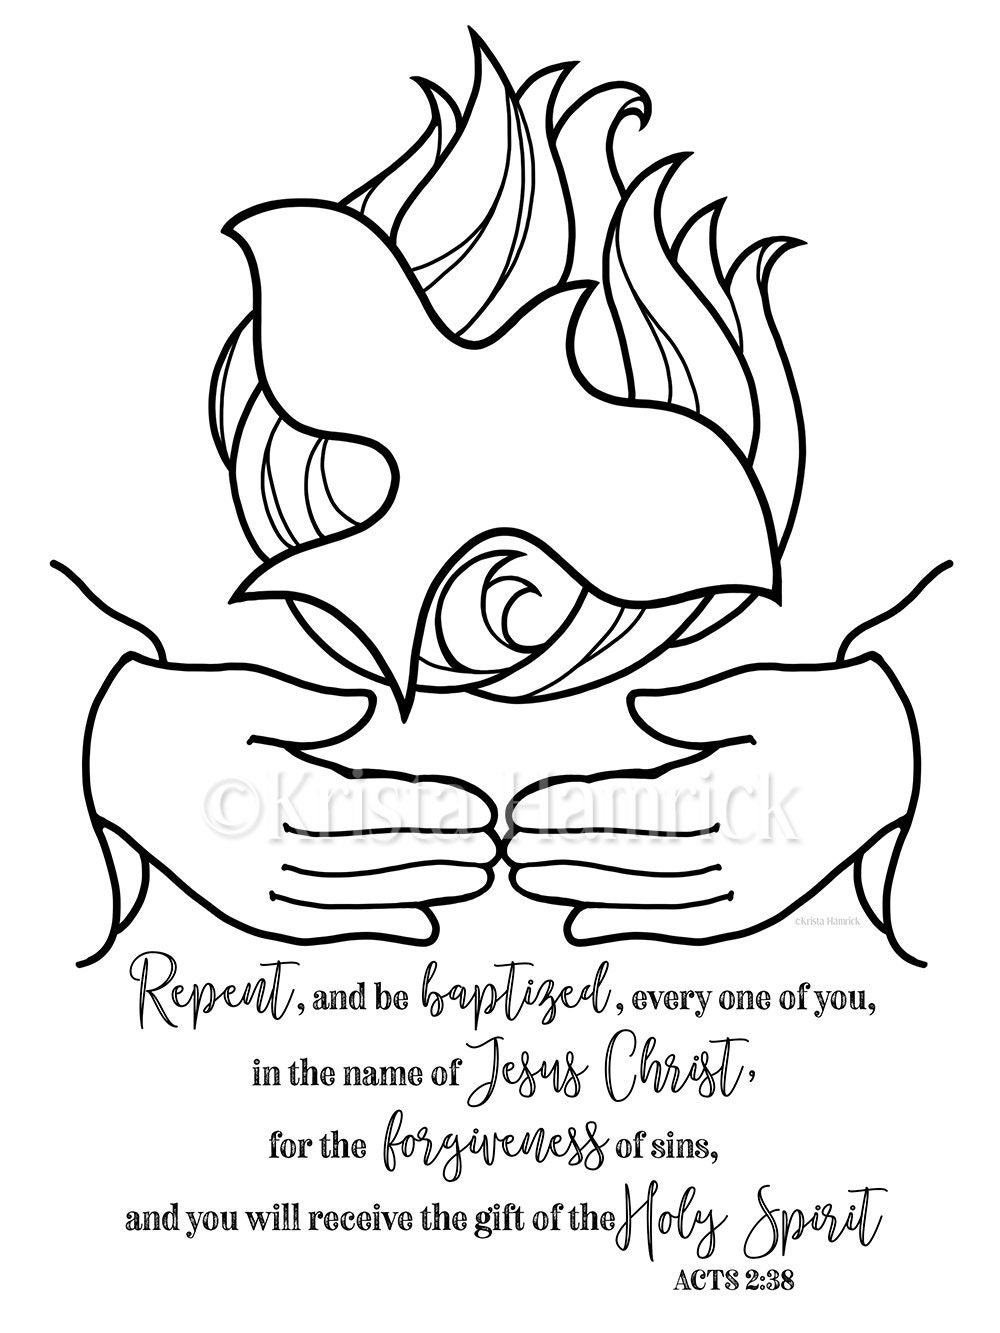 acts 20 coloring pages - photo#19